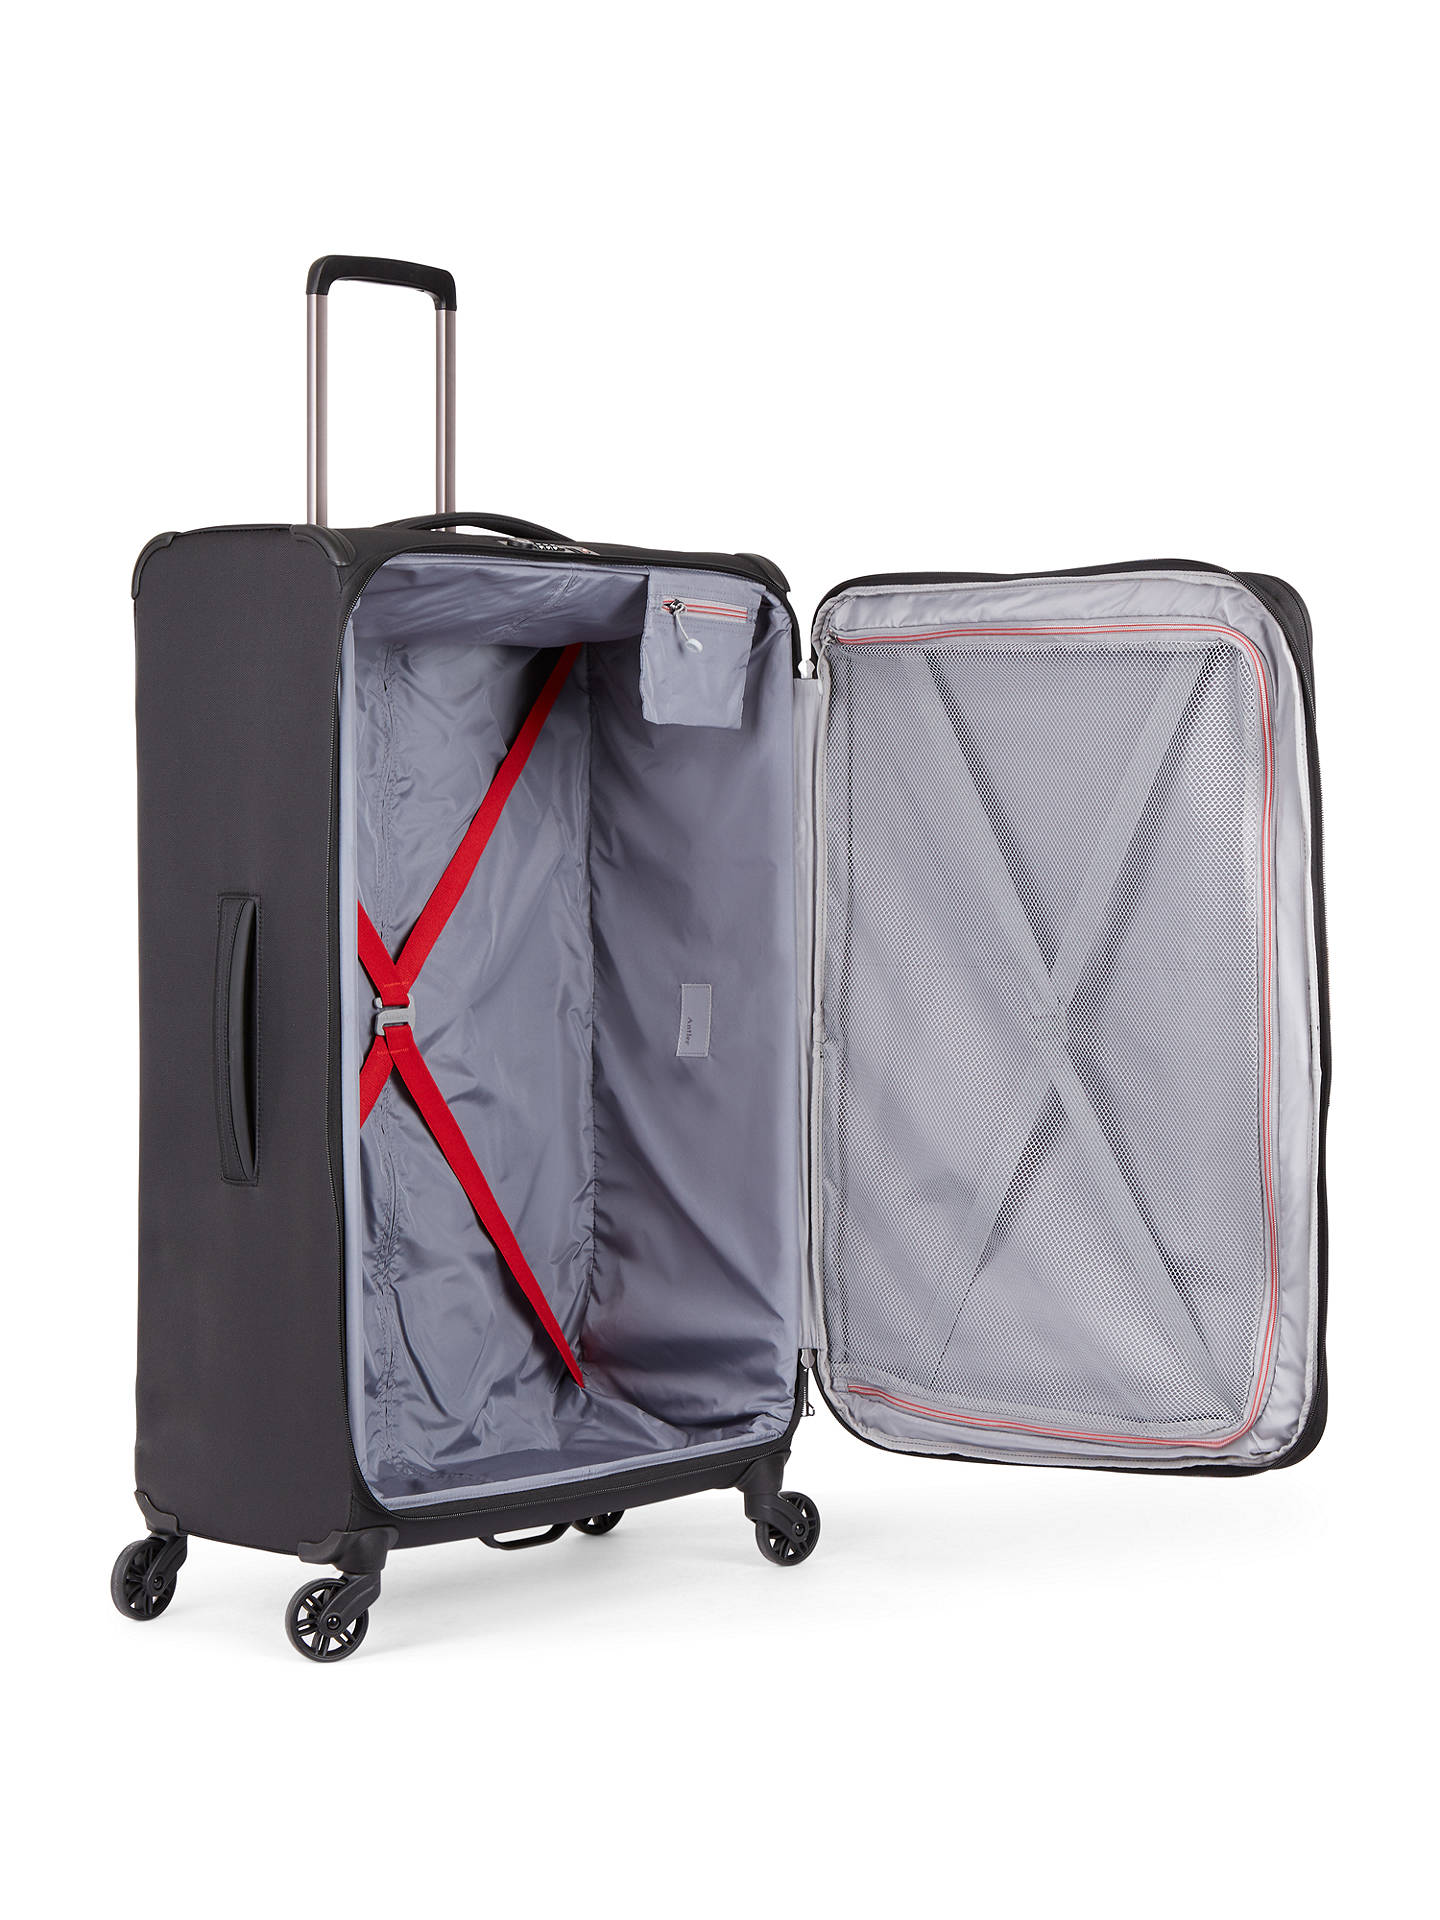 e7ae46284a89 Antler Atmosphere 82cm 4-Wheel Large Suitcase at John Lewis   Partners